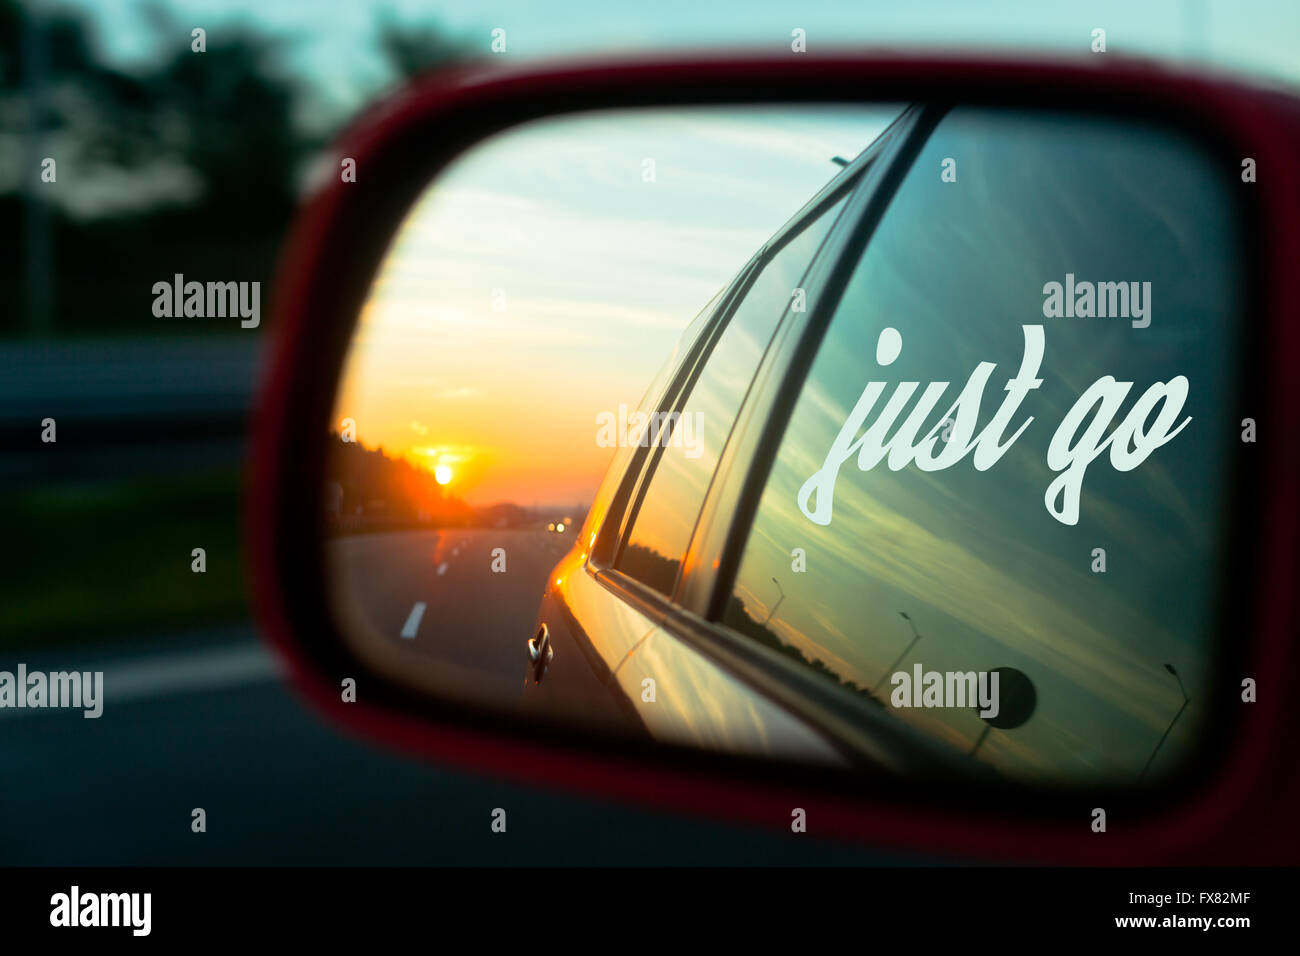 Sunset Mirror Quotes Top 7 Martyrs Mirror Quotes Famous Quotes Sayings About Martyrs Dogtrainingobedienceschool Com